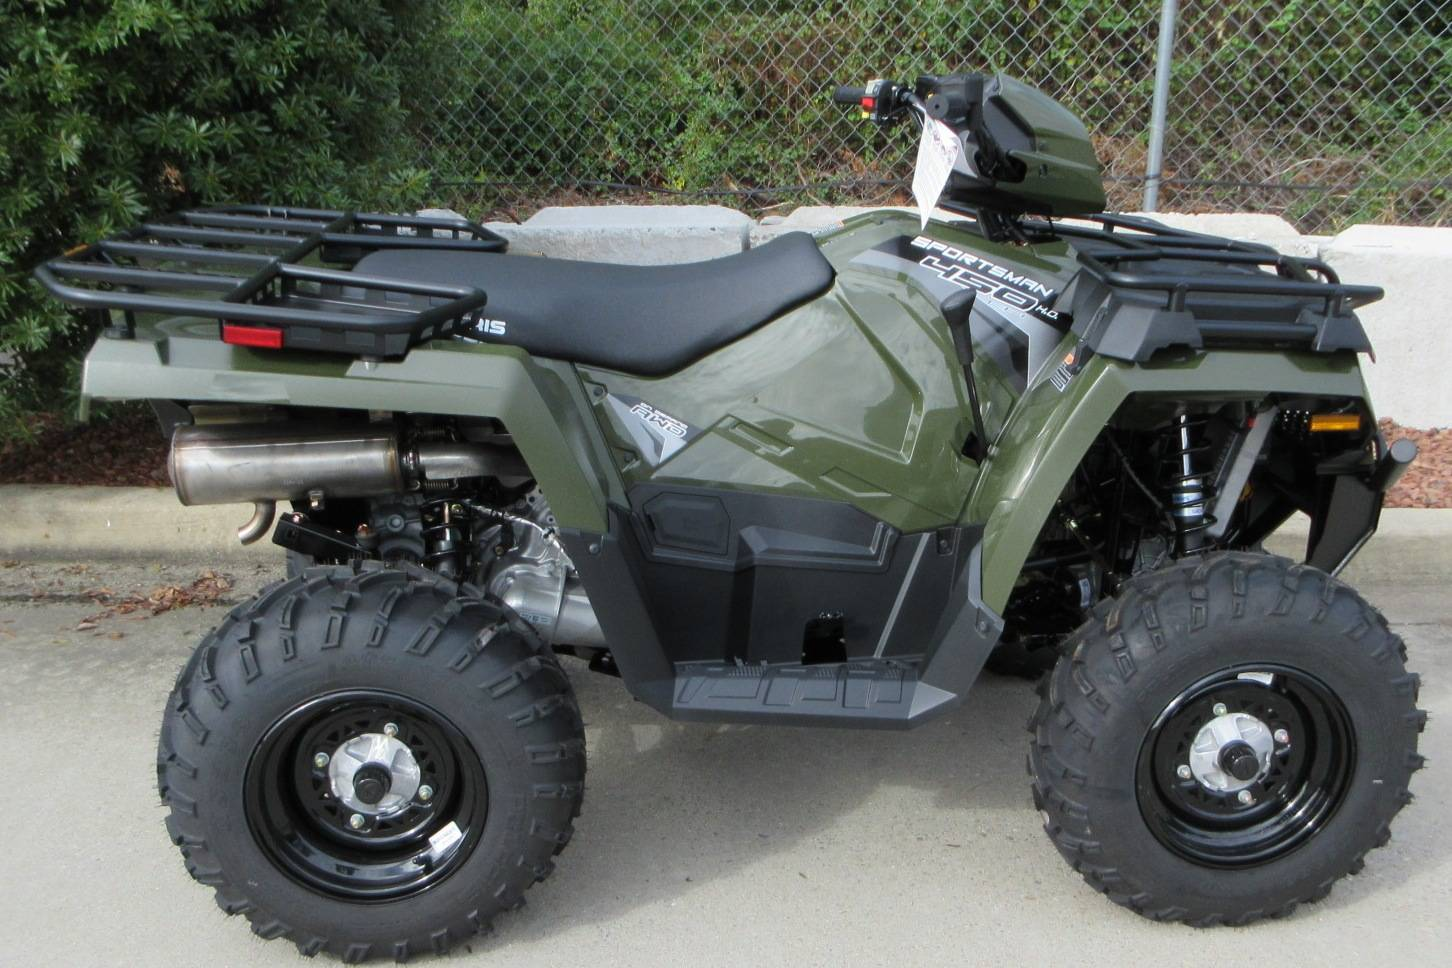 2020 Polaris Sportsman 450 H.O. Utility Package in Sumter, South Carolina - Photo 1